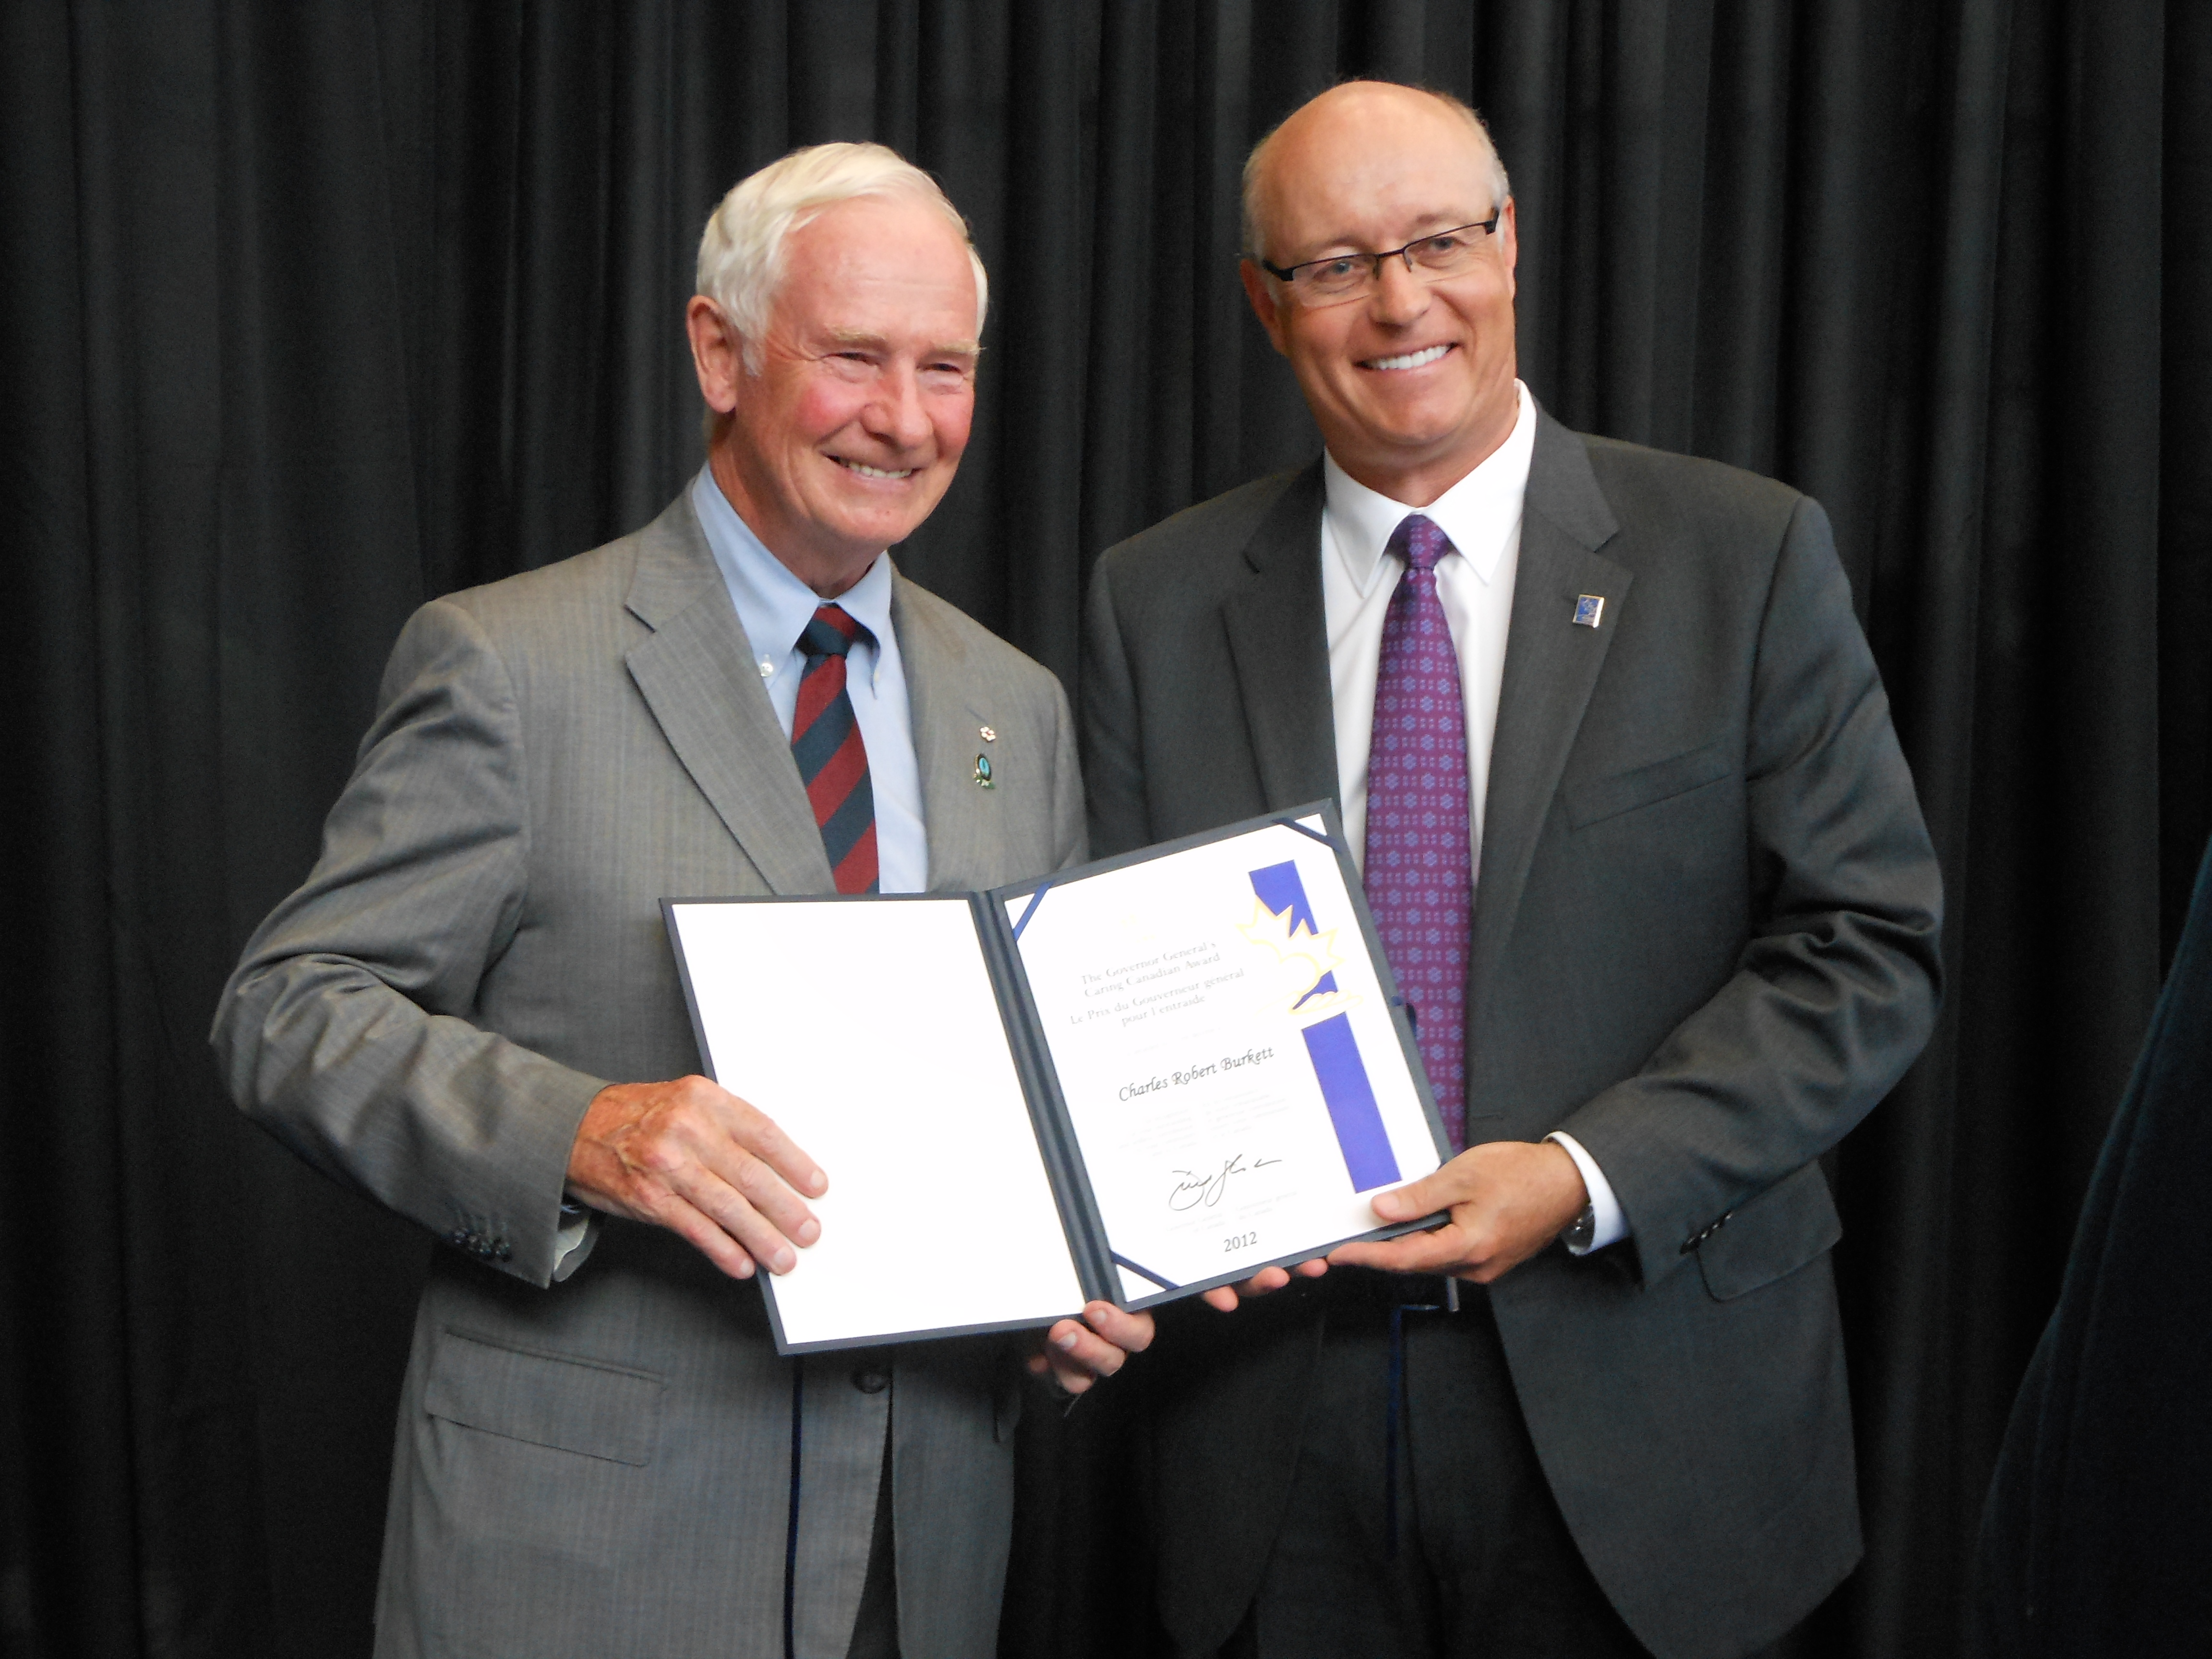 Chuck Burkett, Chair of the foundation's Honorary Governors and a former Chair of the Victoria Foundation's Board of Directors, with His Excellency The Right Honorable David Johnston.